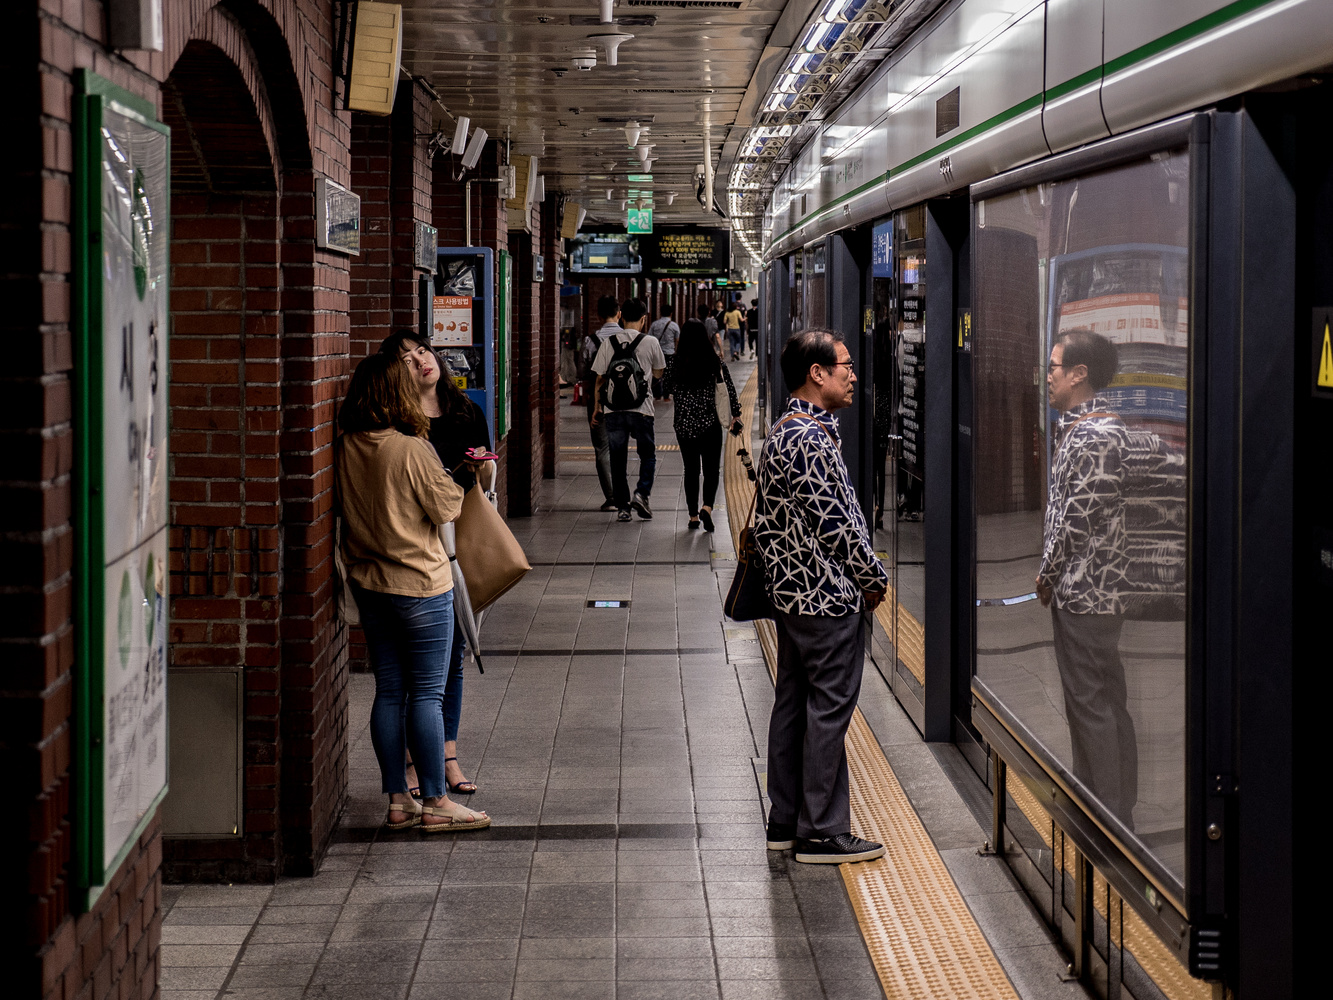 Old man and his reflection waiting for the metro by Isai Oswald